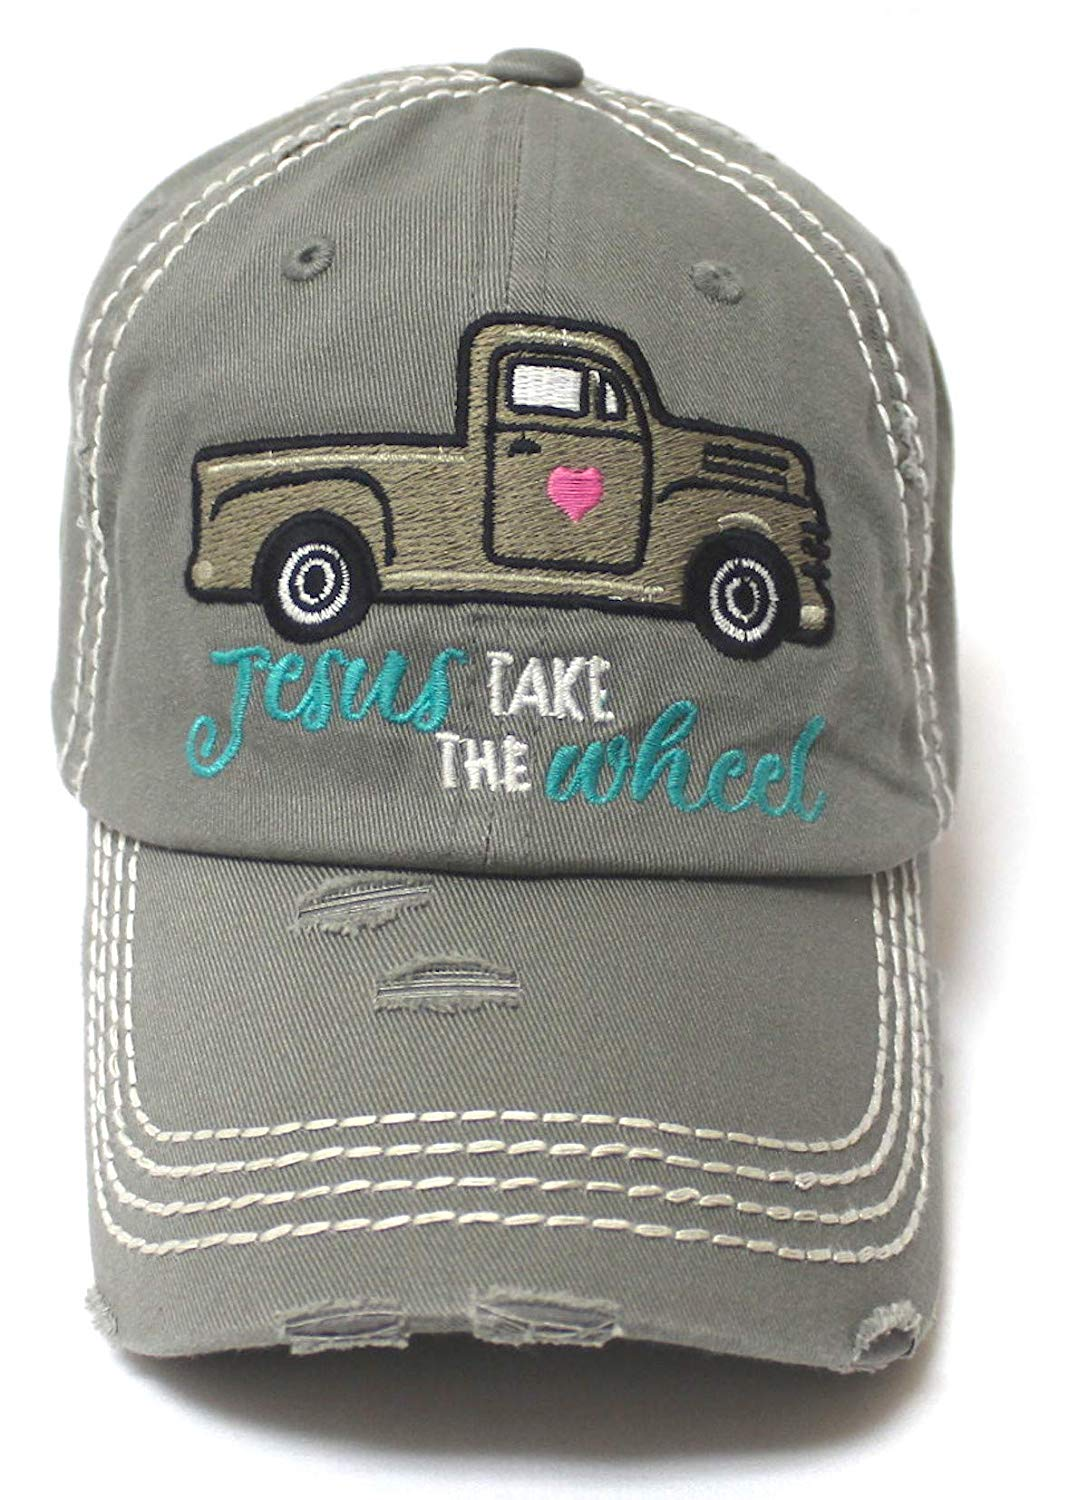 CAPS 'N VINTAGE Women's Camping Cap Jesus Take The Wheel Truck Heart Embroidery Hat, Slate Grey - Caps 'N Vintage